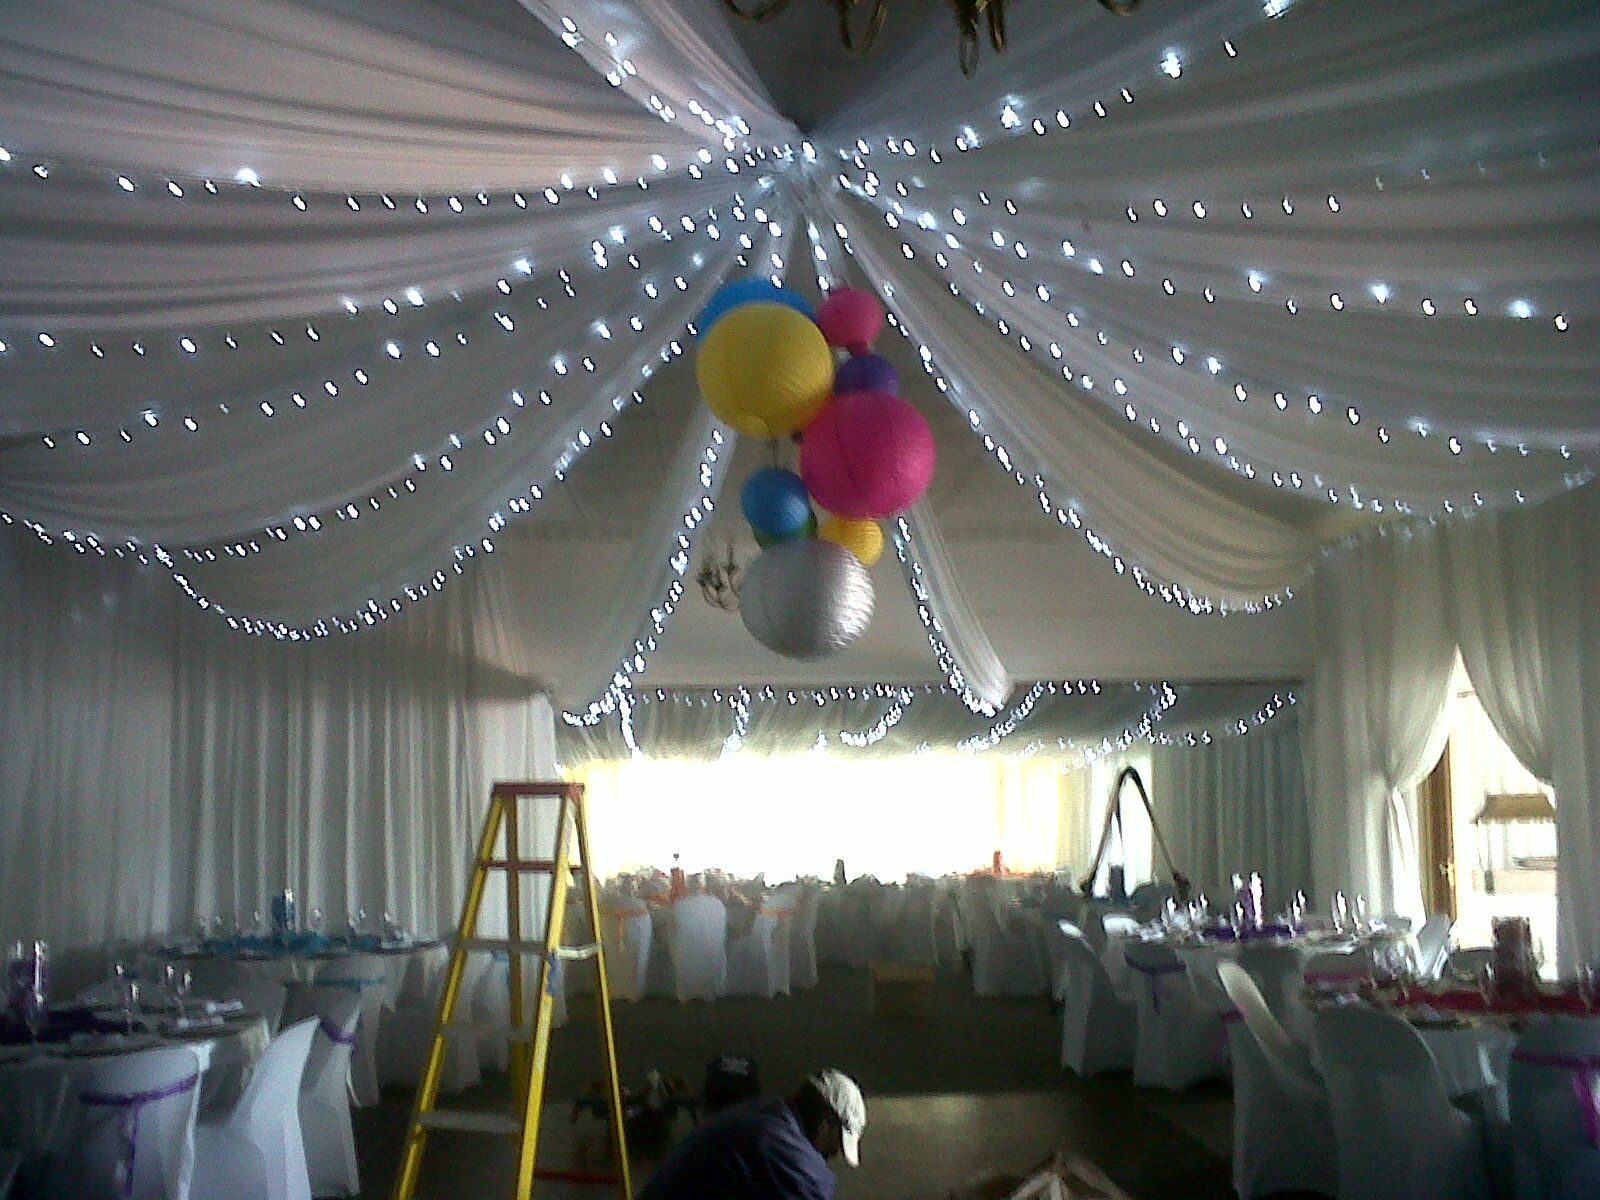 draping how pin roof events victoria hang november with ceiling fairy for cherry strip lights club plum wedding lake to drapes